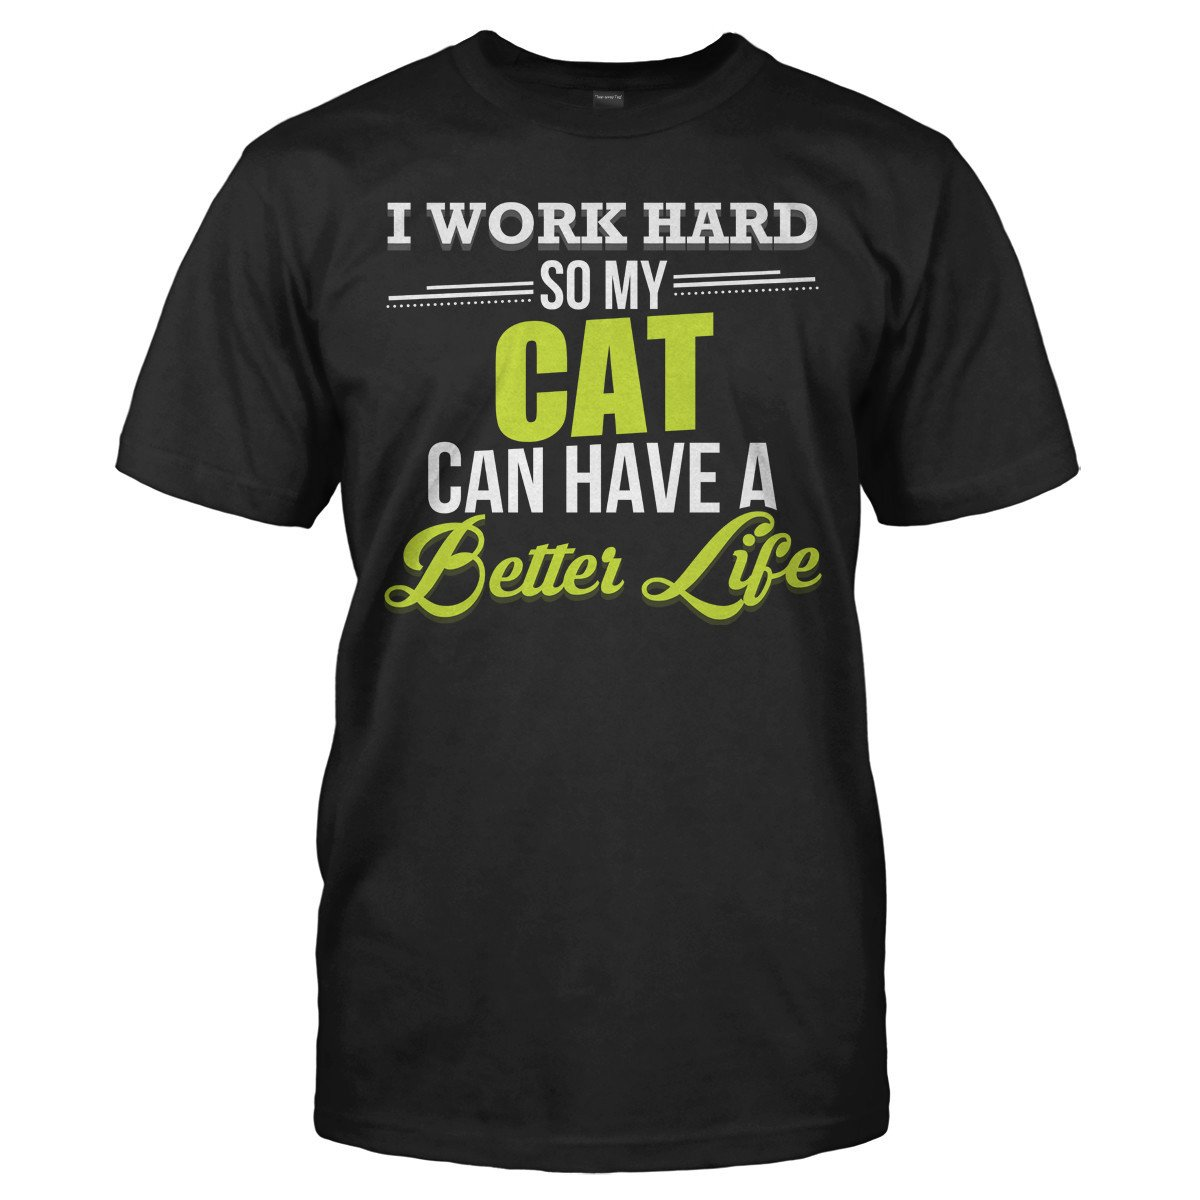 I Work Hard So My Cat Can Have a Better Life - T Shirt